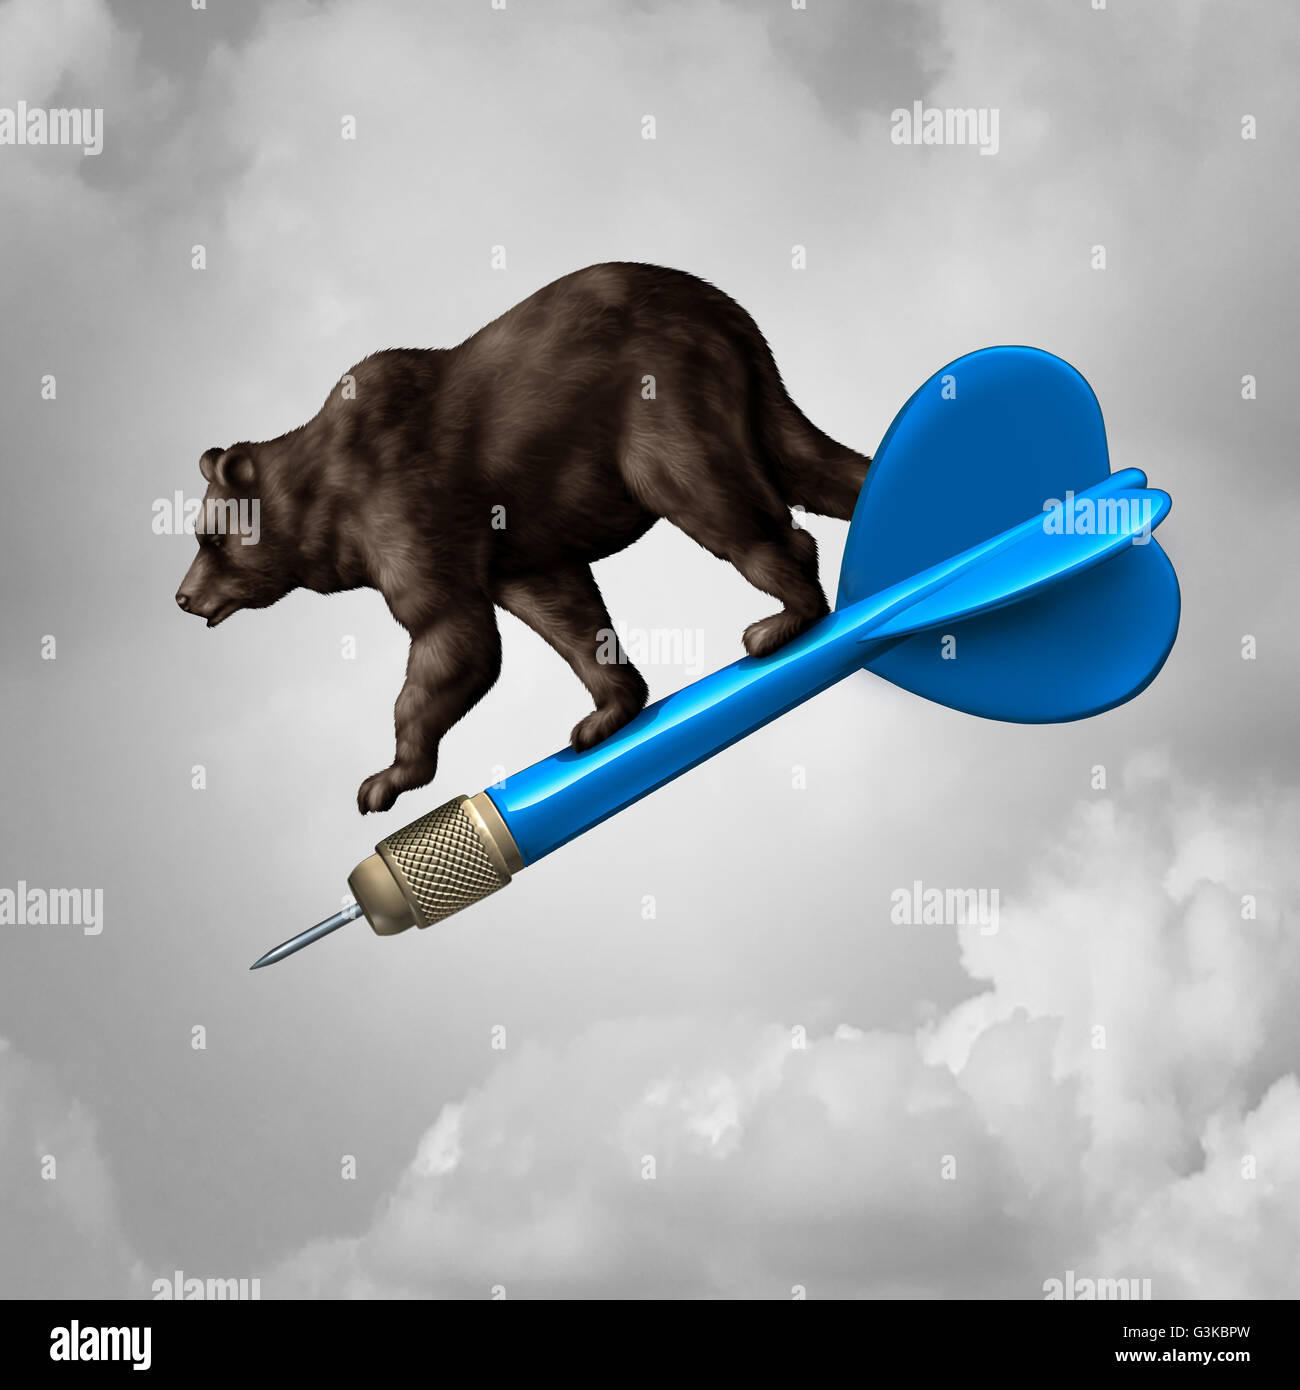 Bear market prediction missed target financial concept and losing stock goal business symbol as a pessimistic riding - Stock Image